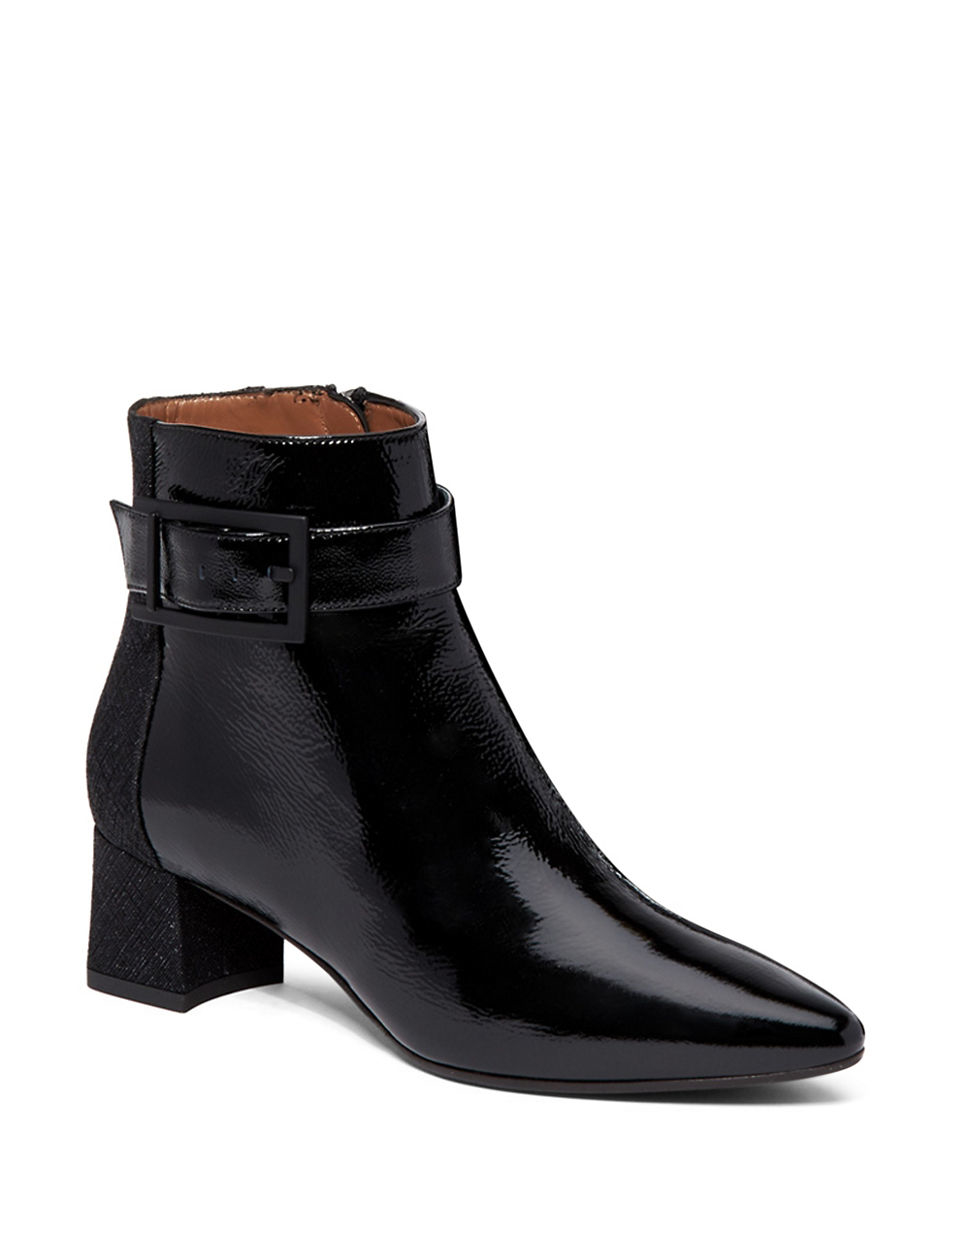 aquatalia phyliss naplak patent leather and suede boots in